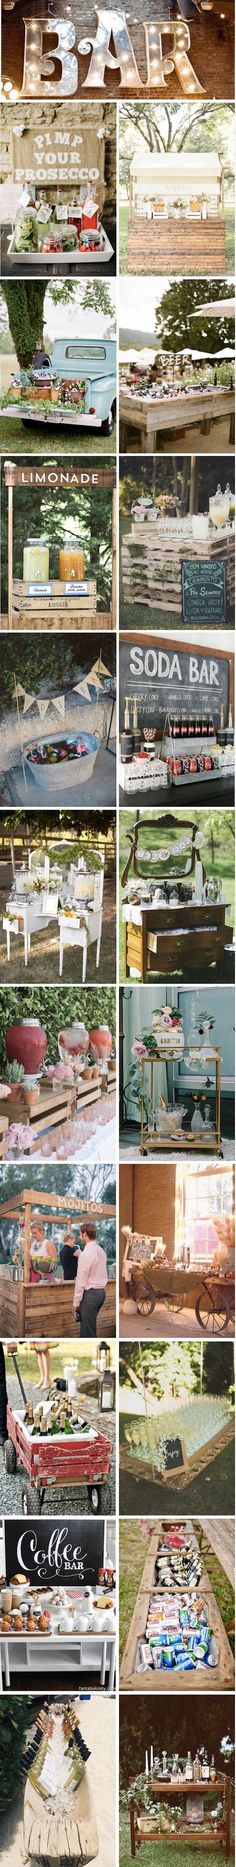 After the great fashion of the Candy Bar, the brides discovered the new trend to have fun . French Wedding, Rustic Wedding, Our Wedding, Wedding Reception Themes, Wedding Decorations, Drinks Wedding, Self Service, Deco Champetre, Night Bar